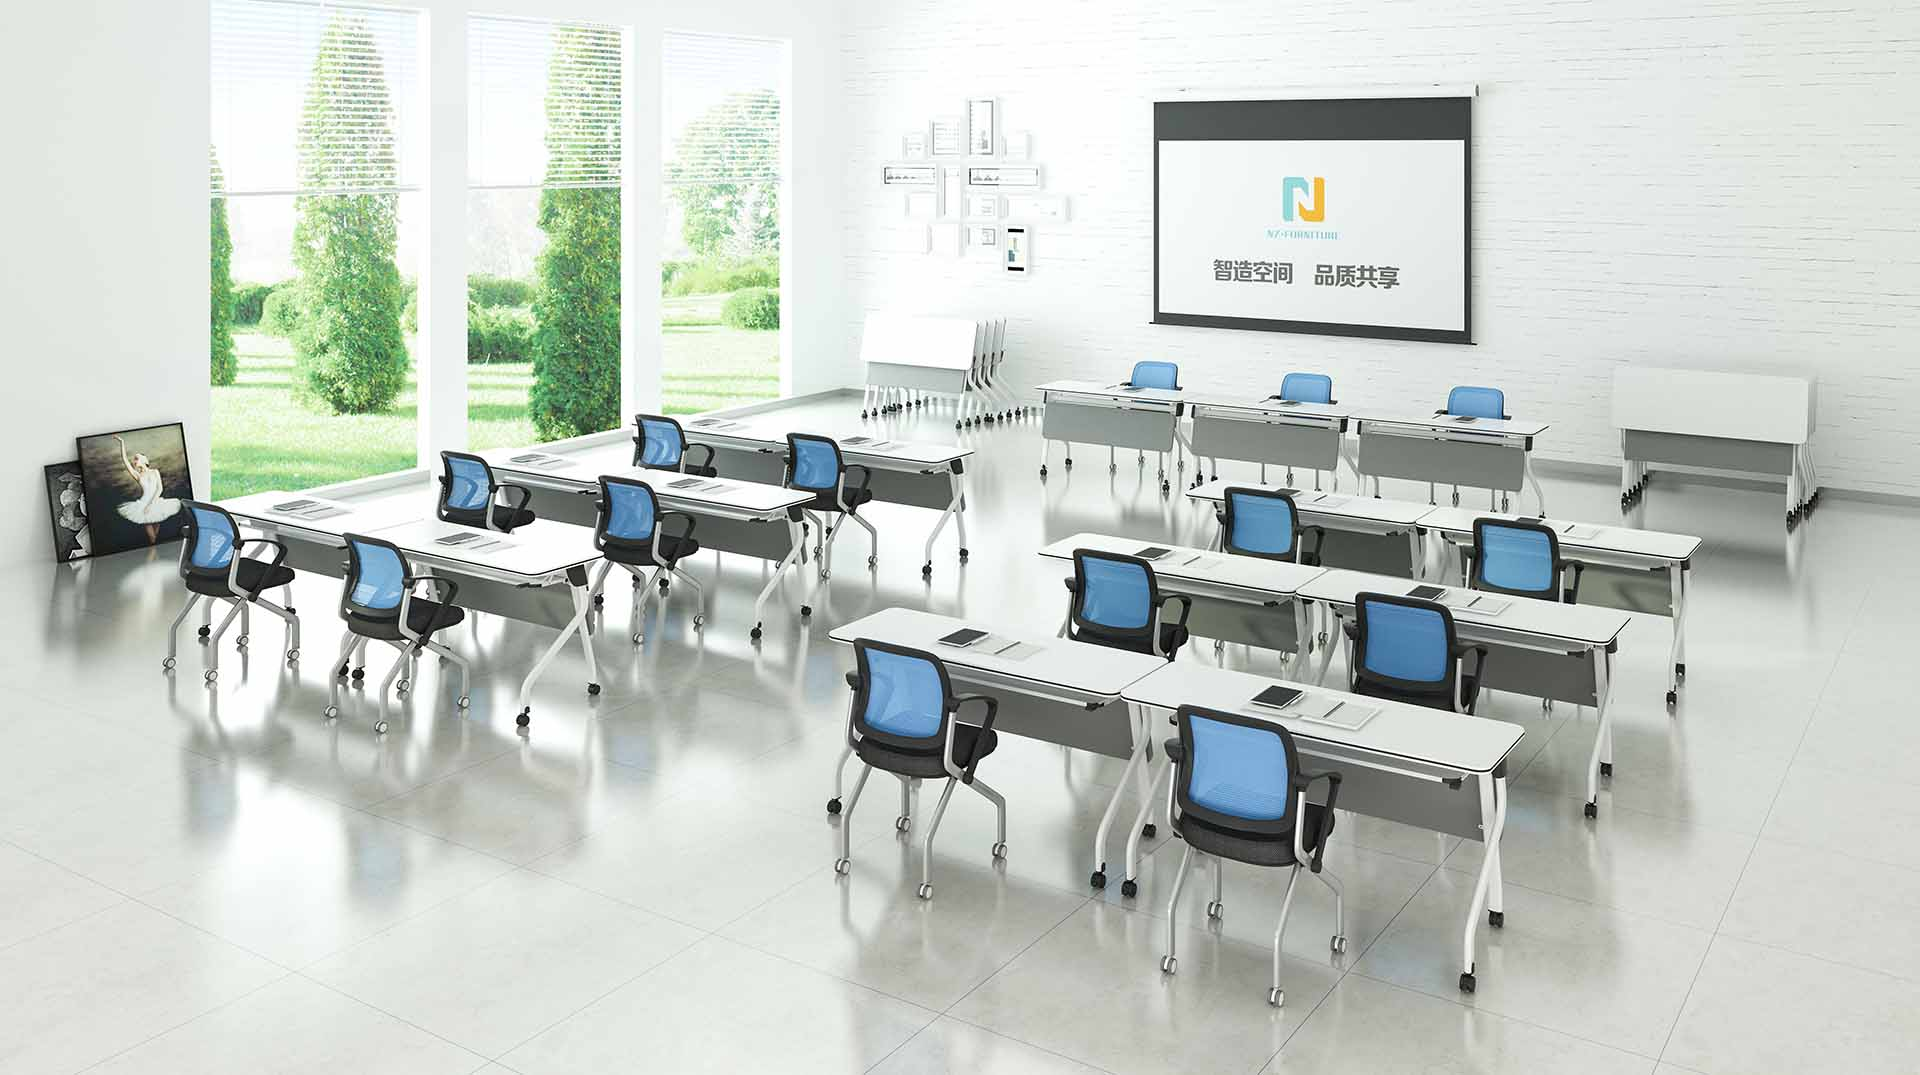 trapezoid modular training room furniture fahsion for sale for office-8